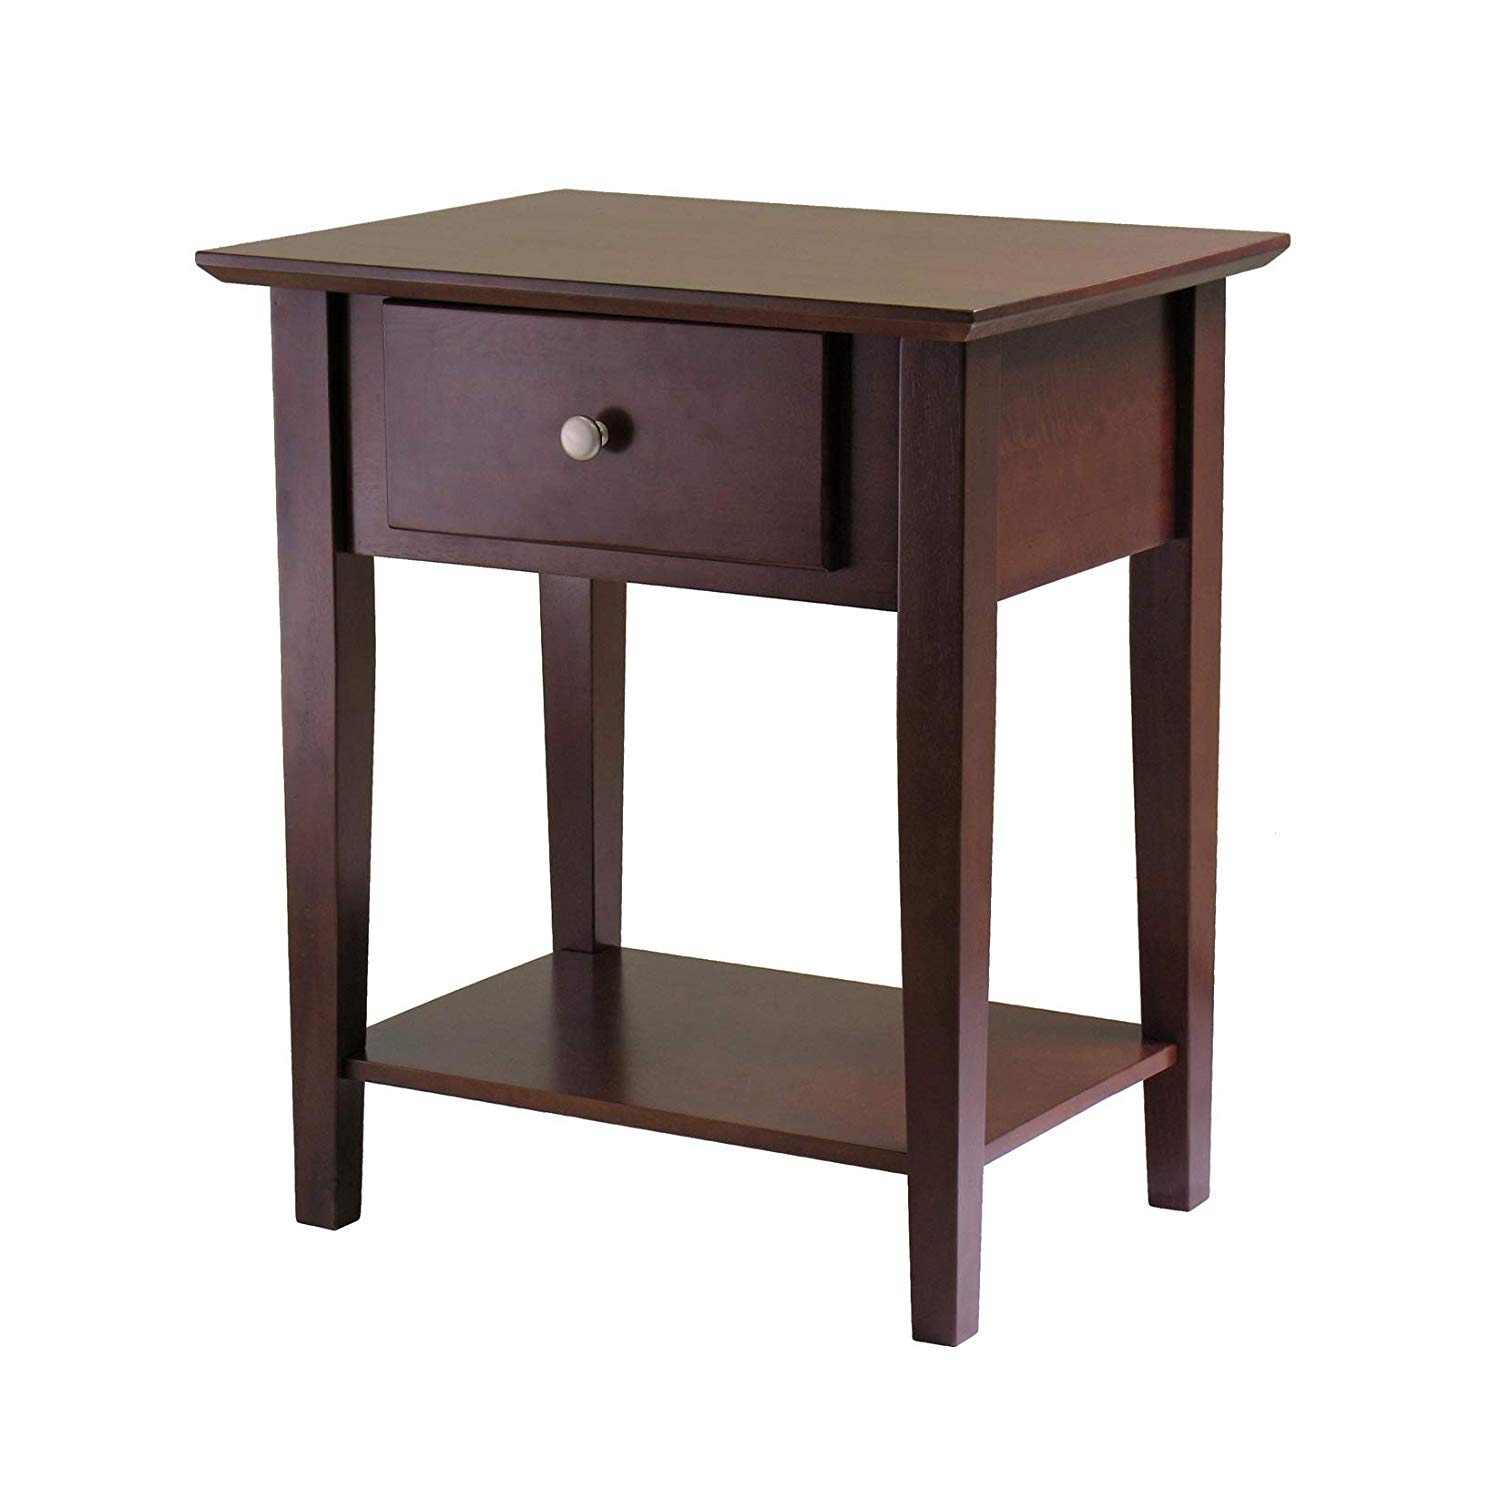 winsome wood shaker accent table antique walnut night kitchen dining mid century modern patio furniture chair covers battery bedside lamp distressed coffee and end tables piece